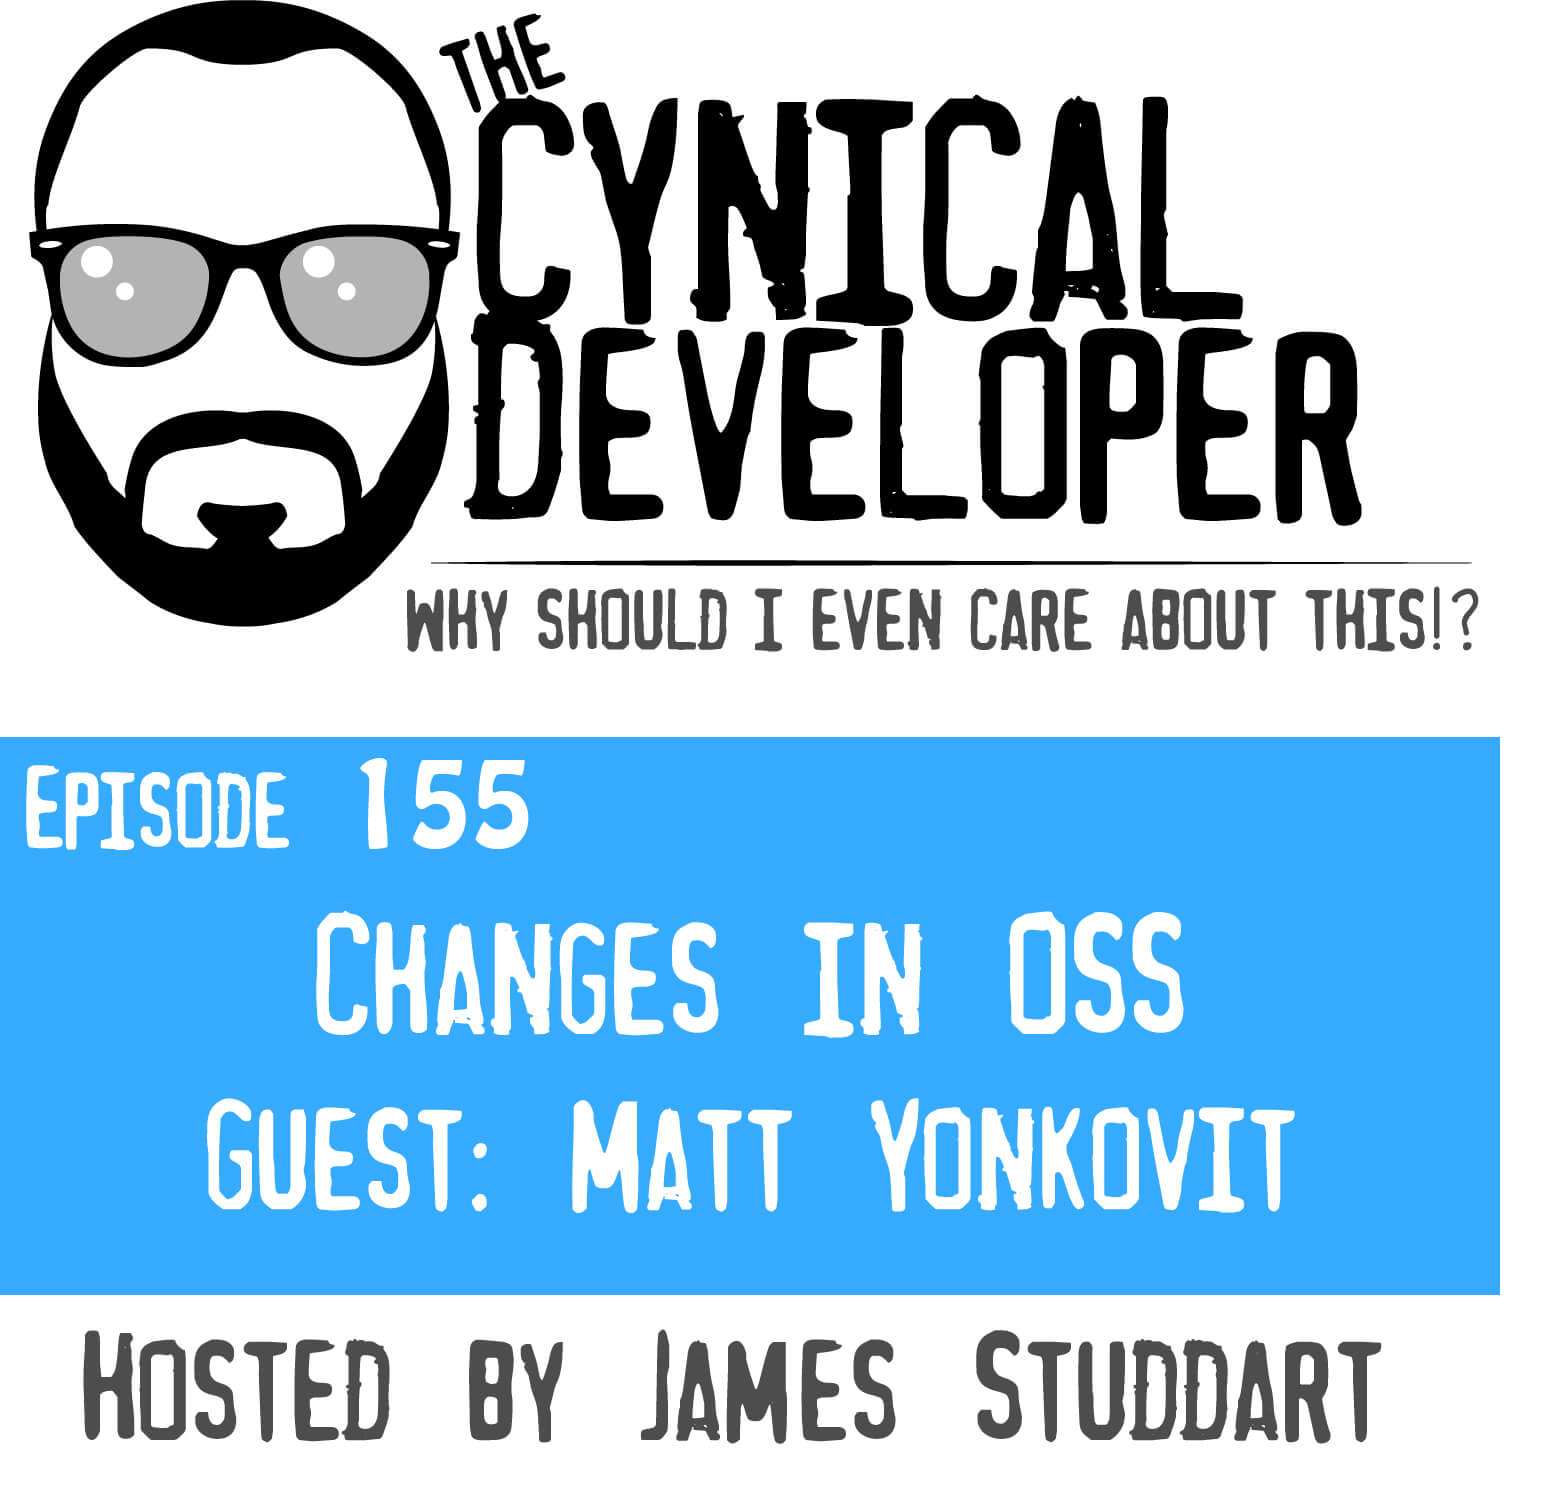 Episode 155 - Changes in OSS